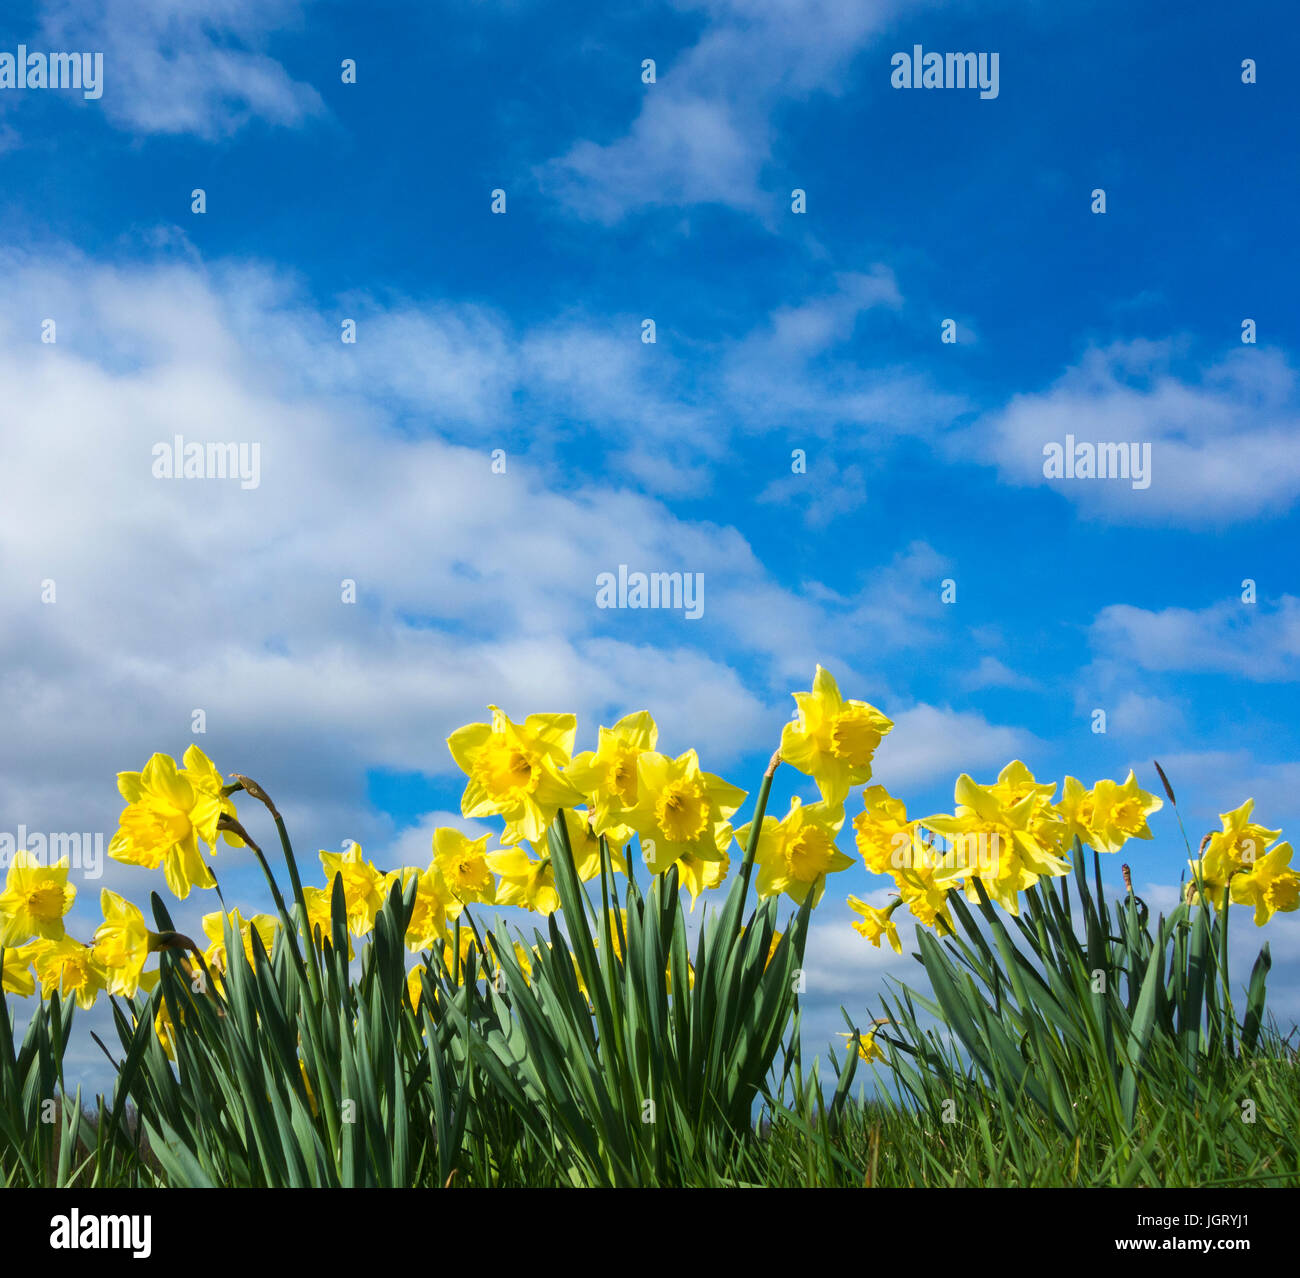 Daffodils against blue sky. BHZ - Stock Image